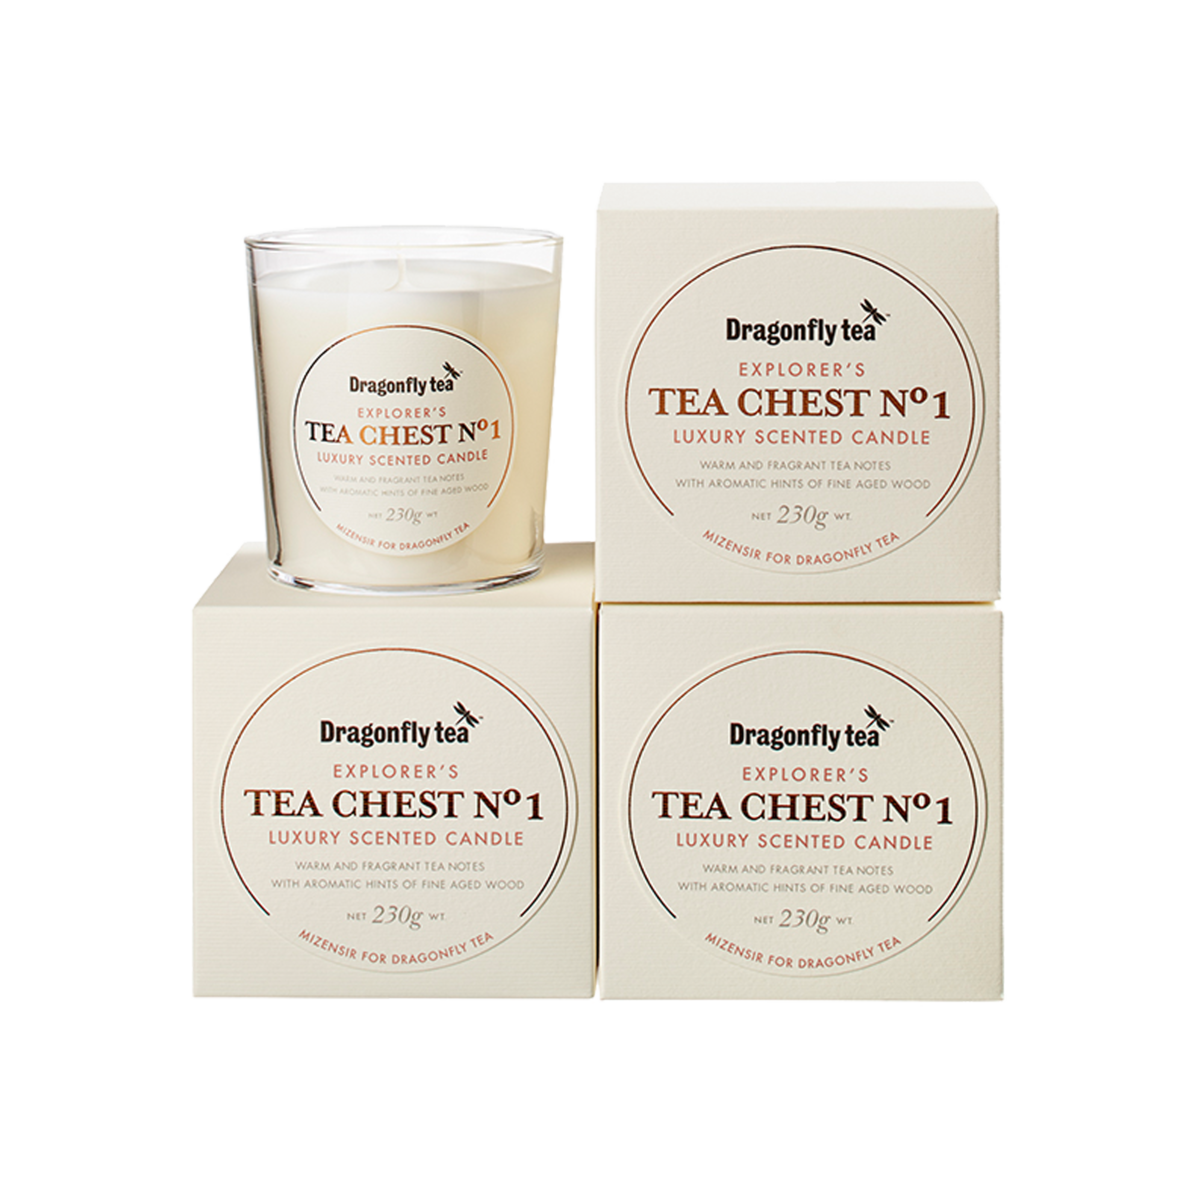 Tea Chest No1. Scented Candle - Dragonfly Tea